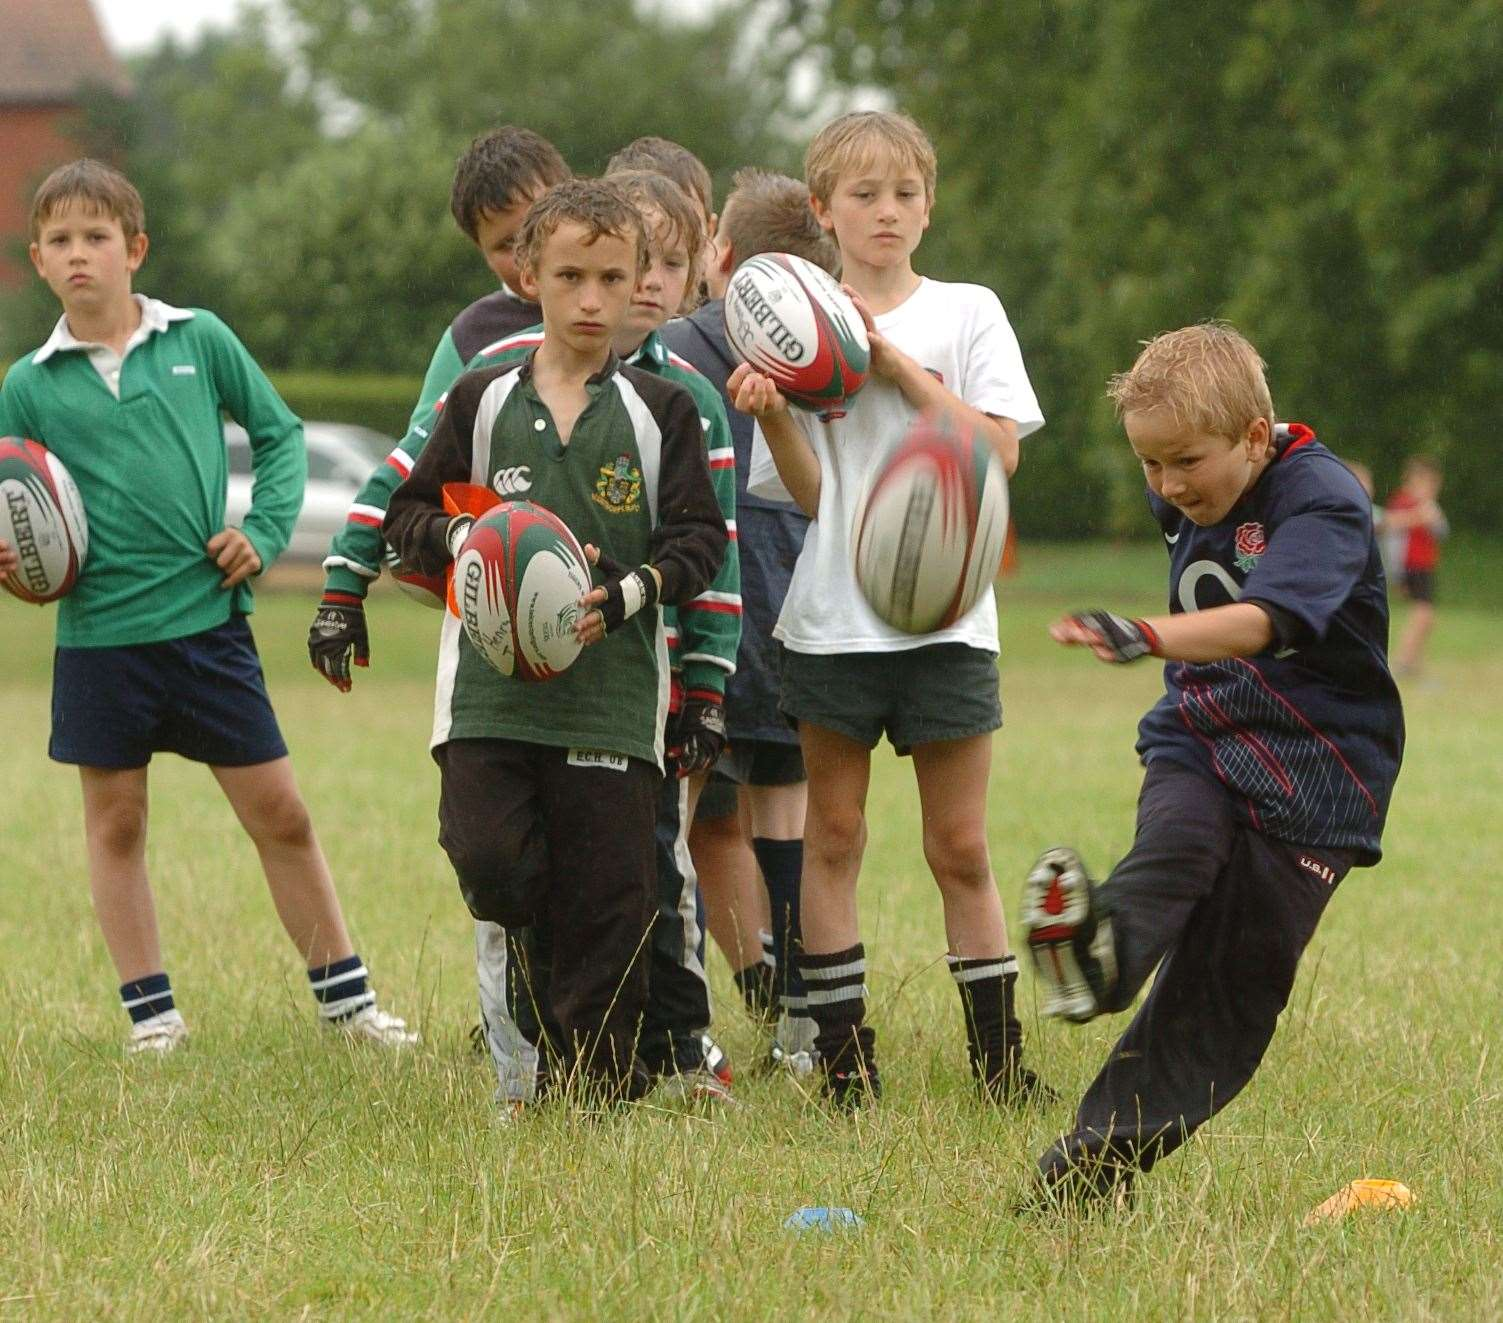 Swaffham Rugby Club expect England's World Cup success to have a positive impact on the club